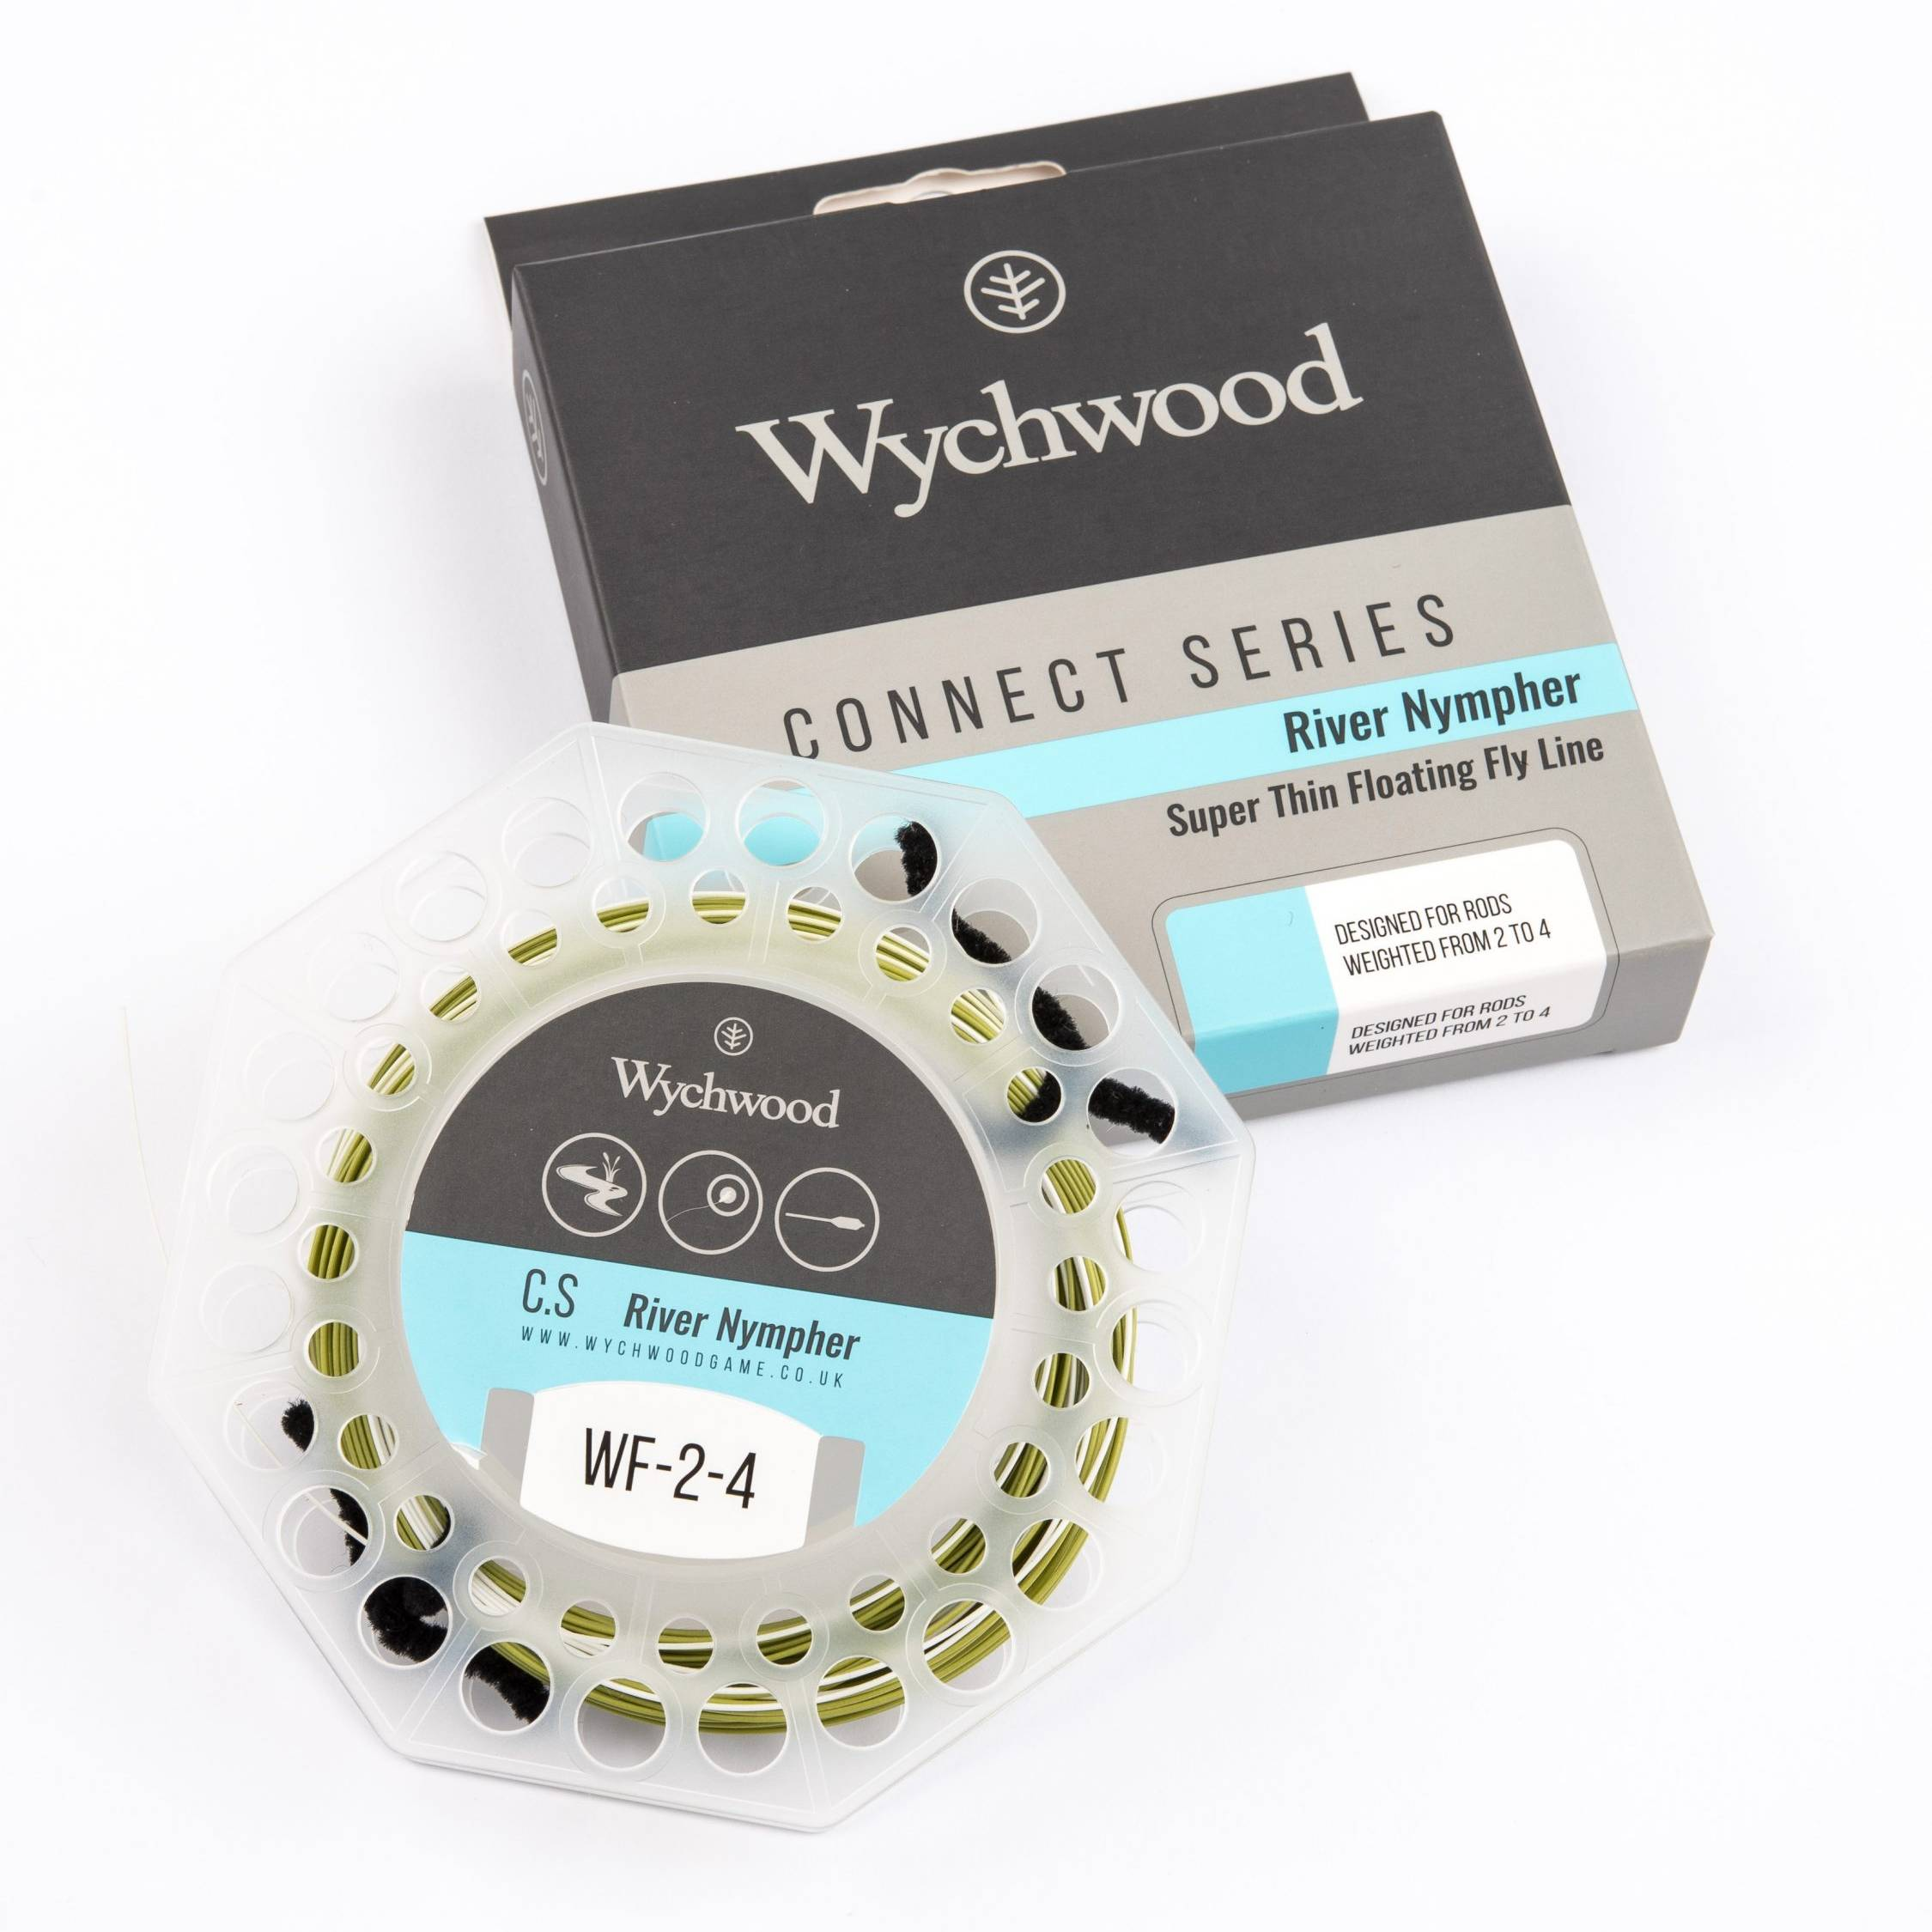 Connect Series River Nympher Fly Line 2-4